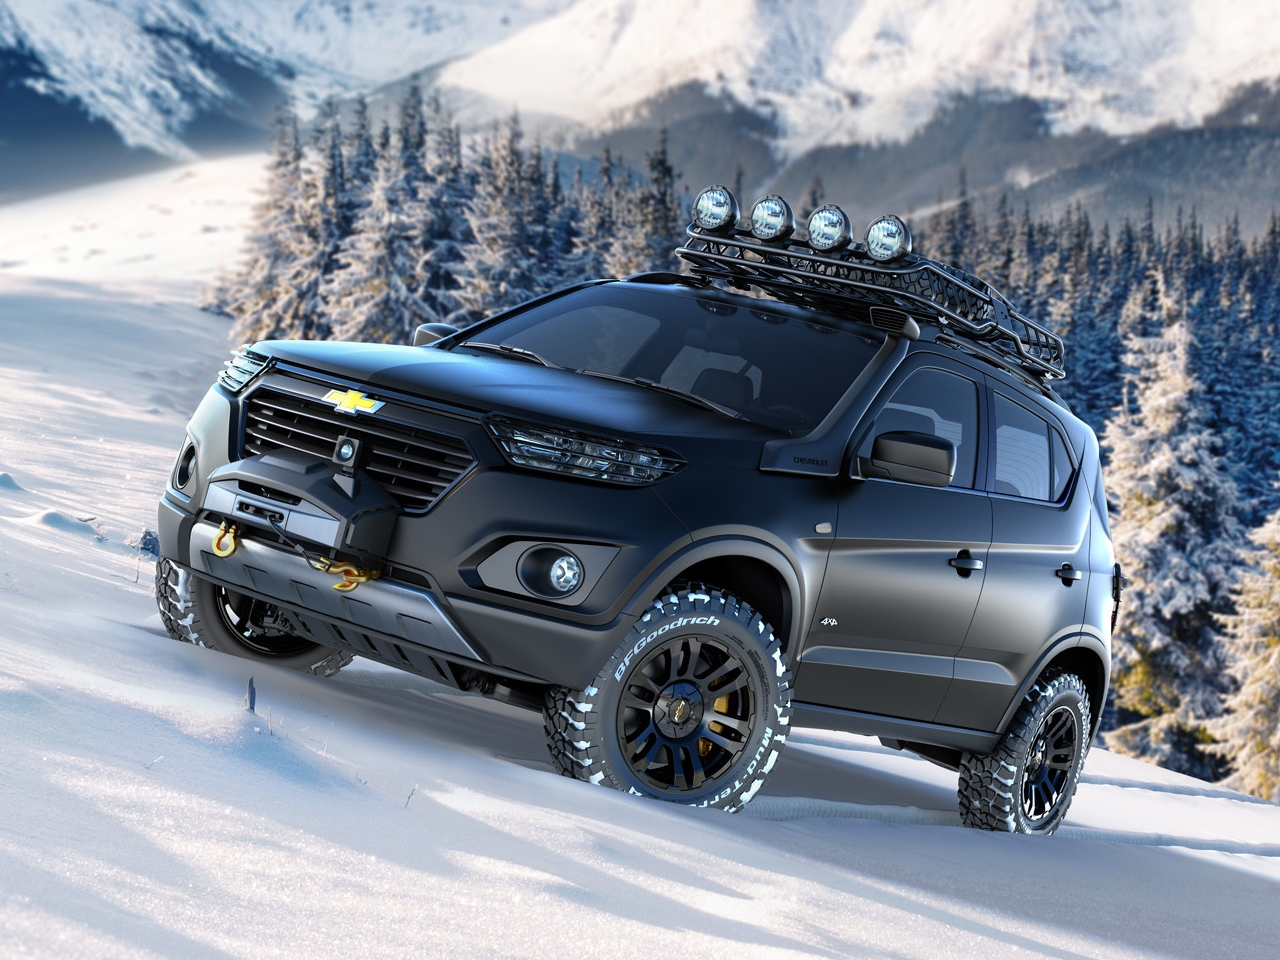 Chevrolet's New Niva SUV Concept Steps Out of the Shadows ...